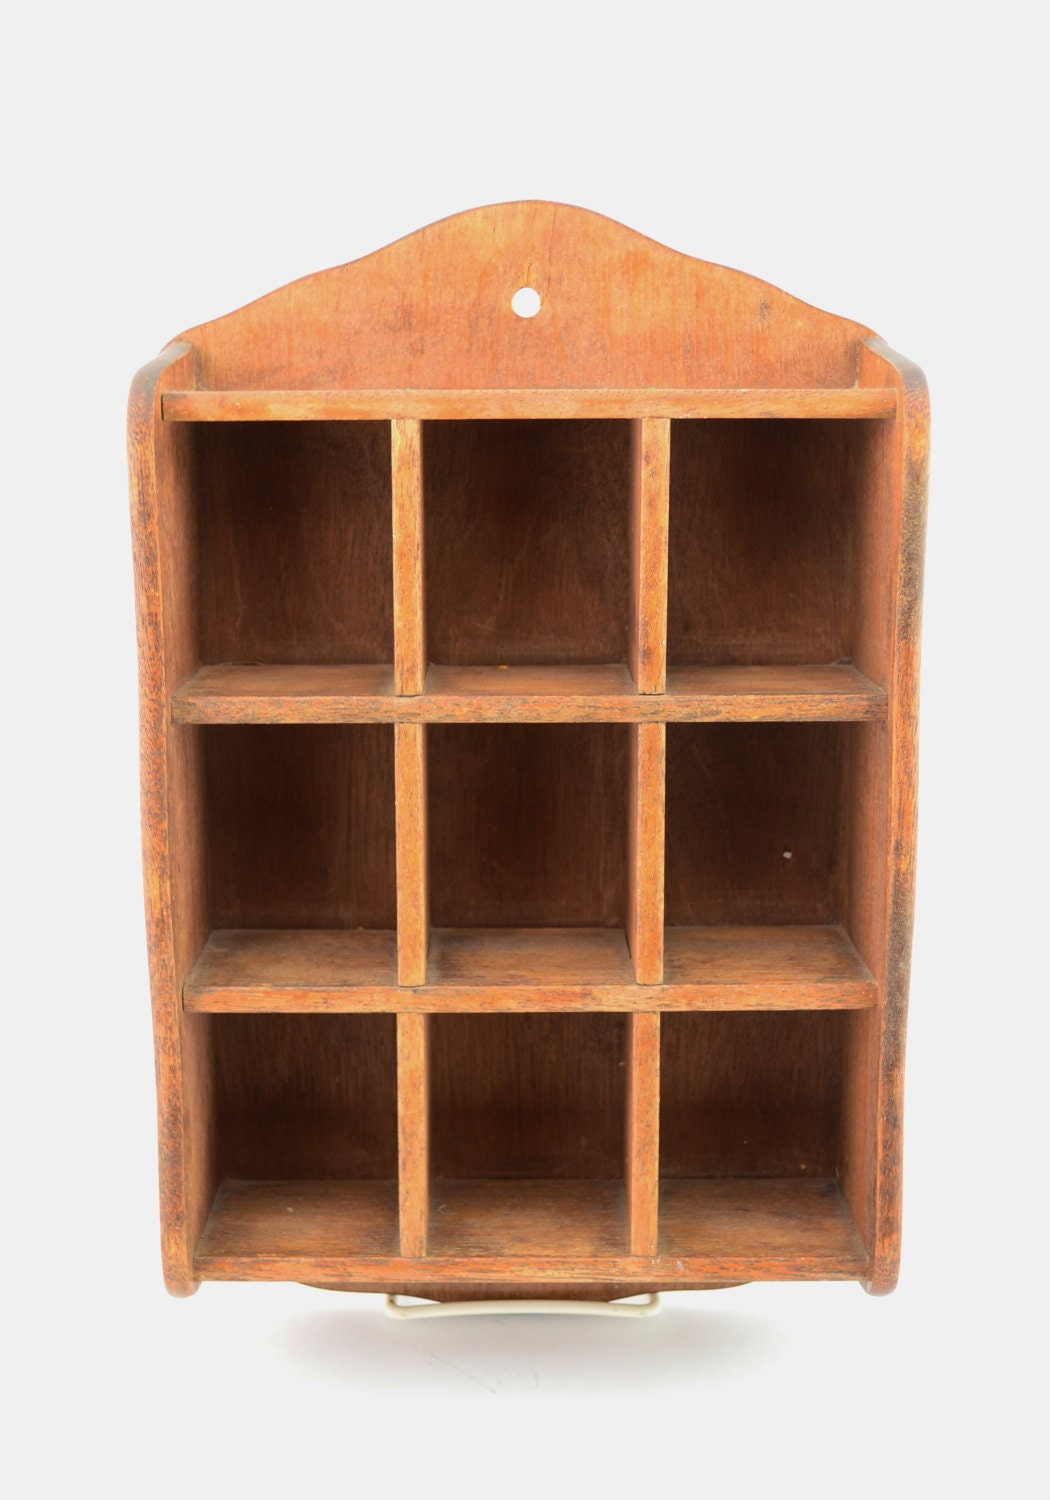 Vintage Wooden Shadow Box 9 Compartments Trinket Shelf Wall